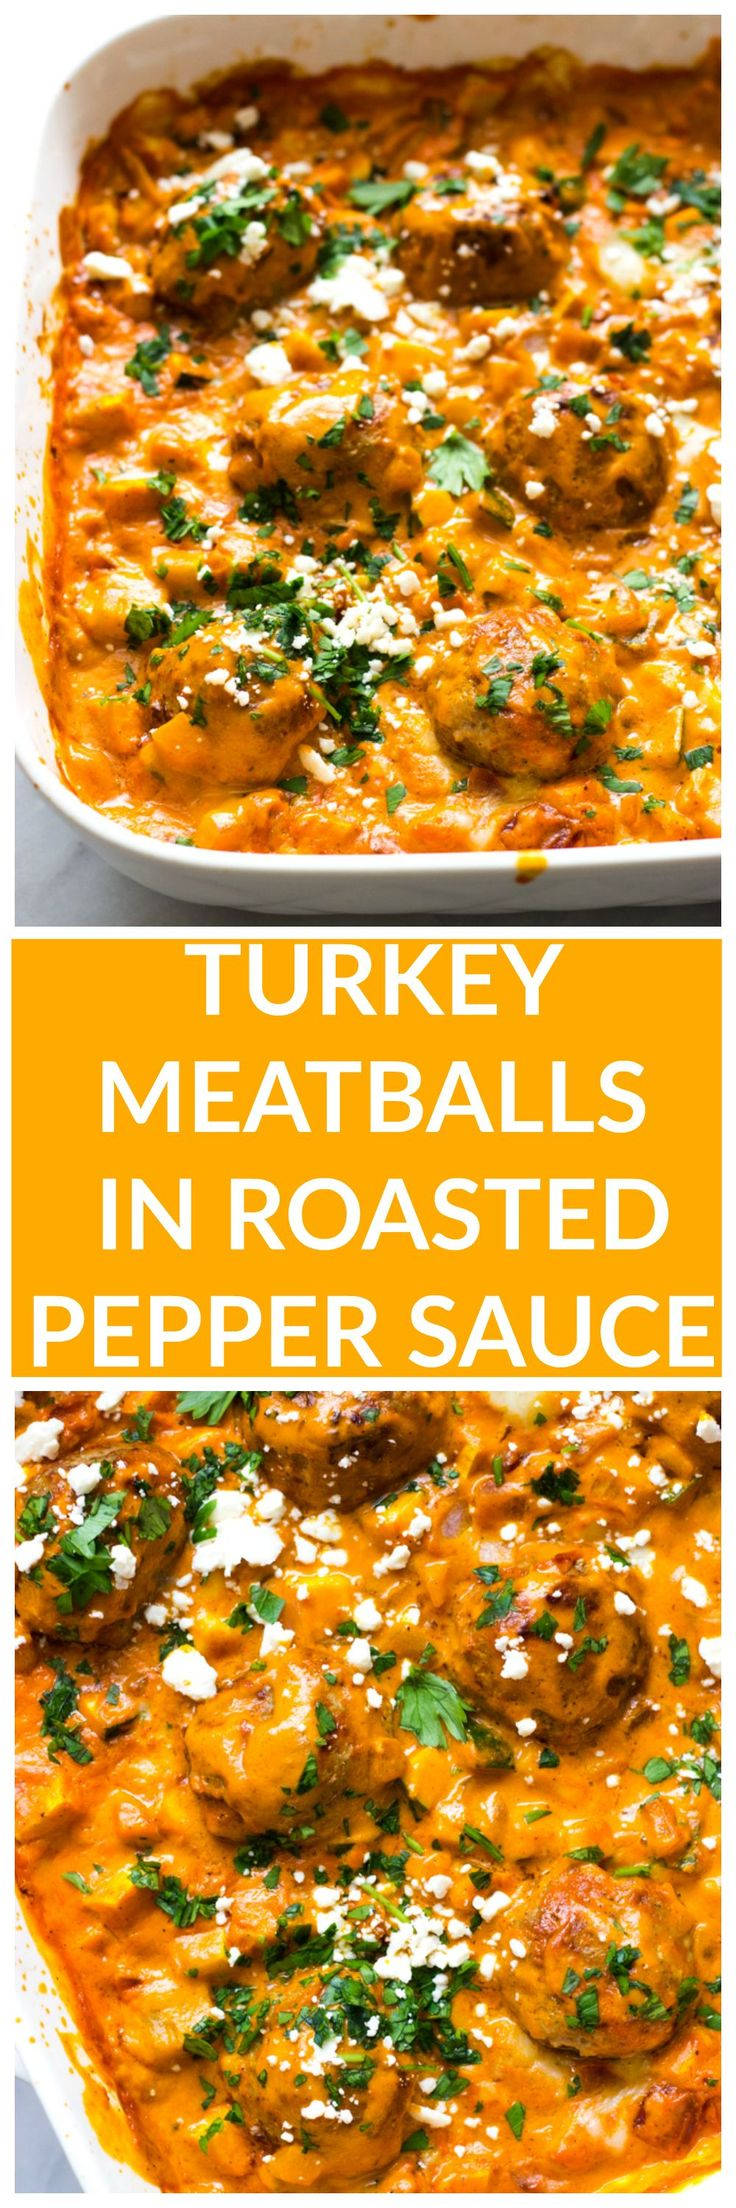 Turkey Meatballs in Roasted Pepper Sauce - made with no cream or cheese, this roasted pepper sauce is made with cashews then baked with healthy turkey meatballs and simple veggie hash | littlebroken.com Katya | Little Broken Shady Brook Farms Turkey #tryturkey #sponsored